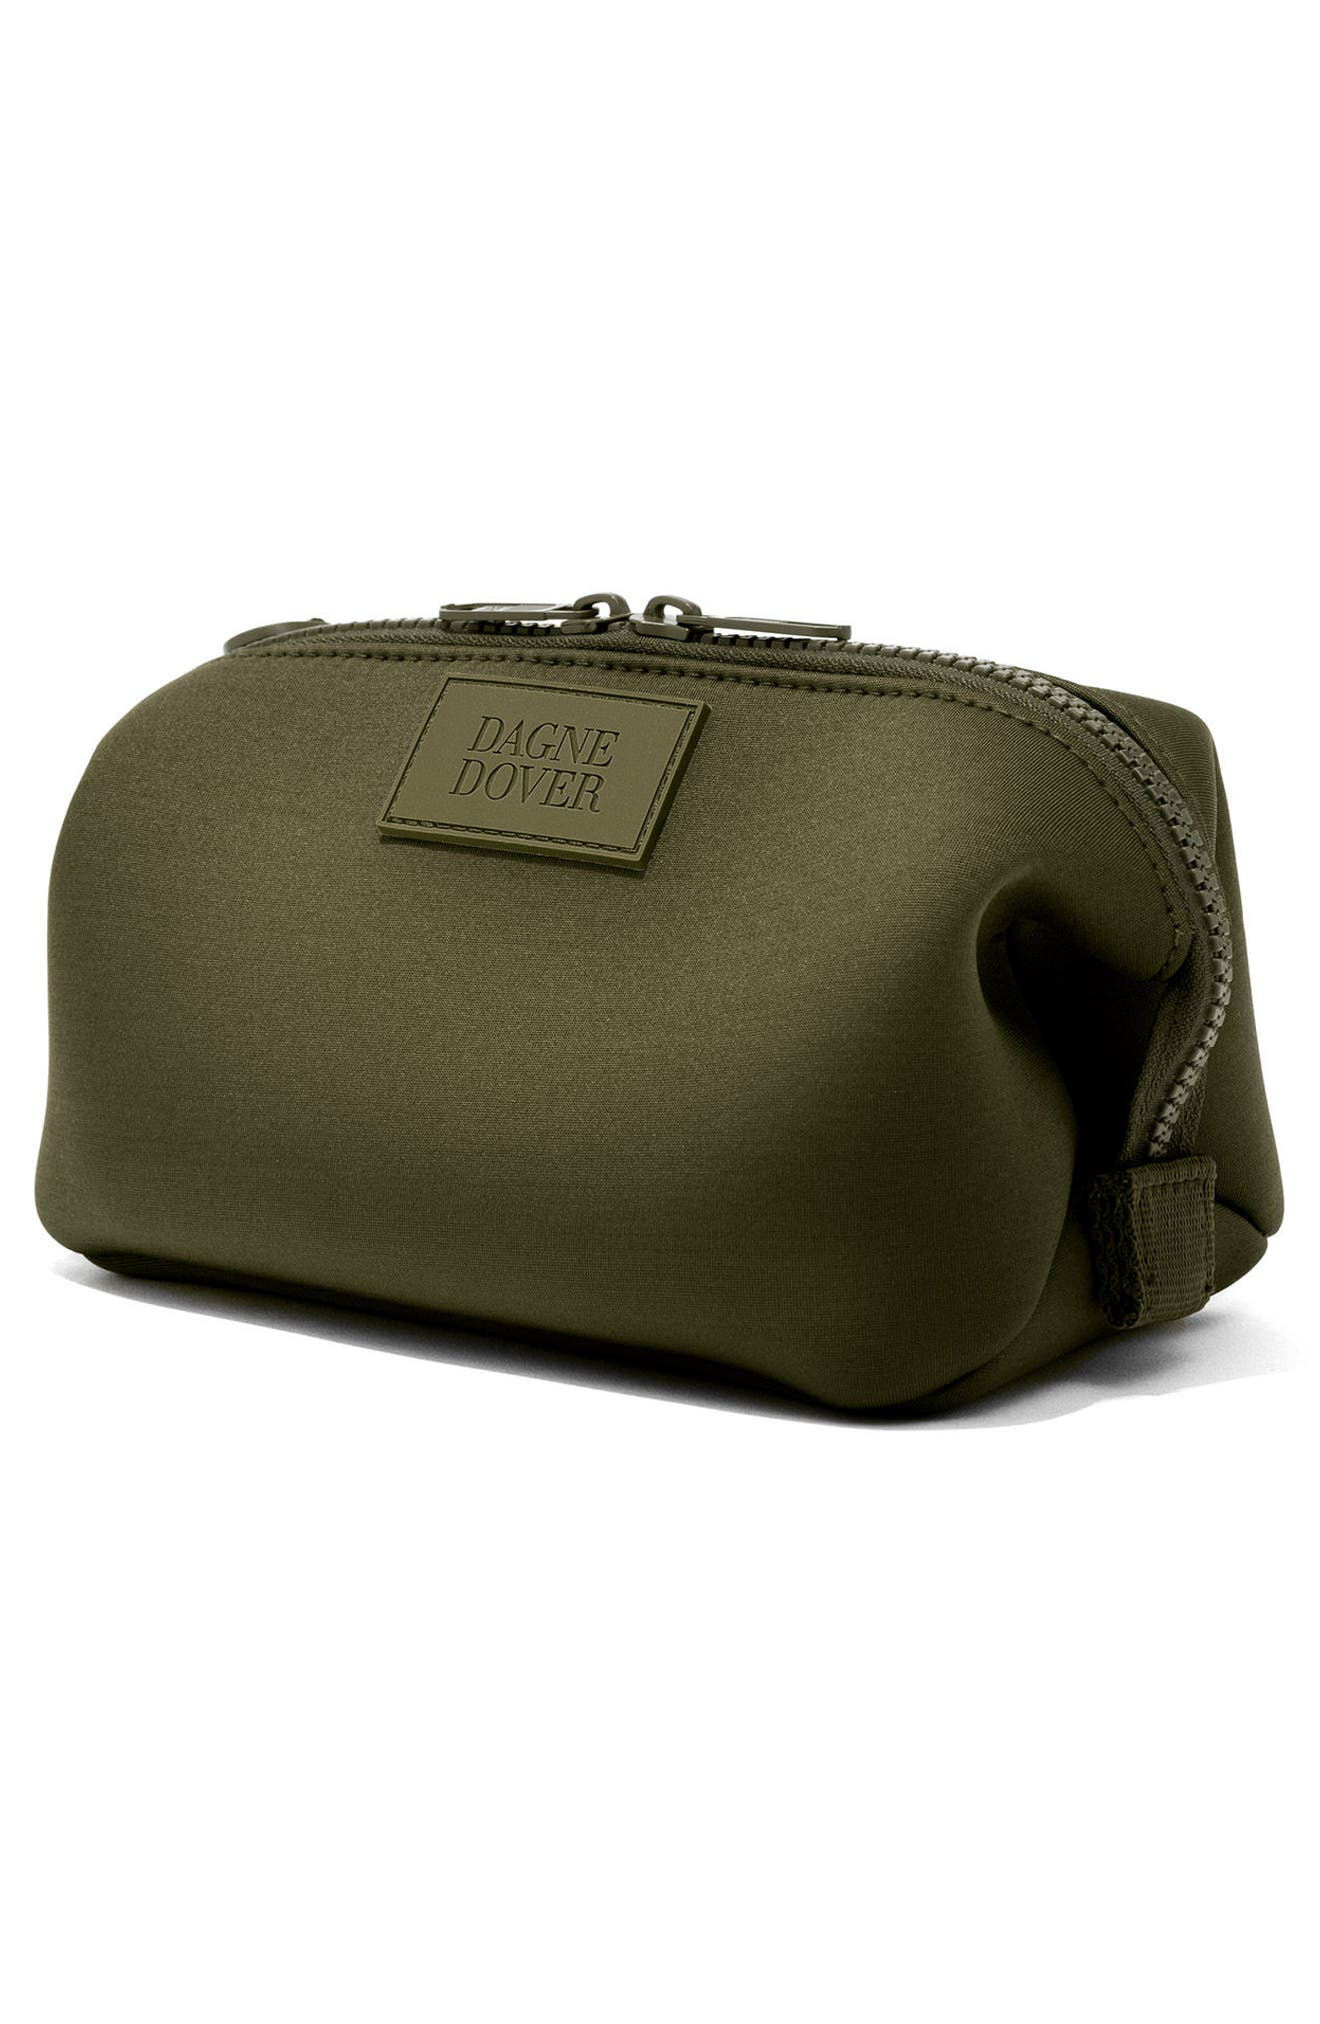 Small Hunter Neoprene Toiletry Bag,                             Alternate thumbnail 4, color,                             DARK MOSS